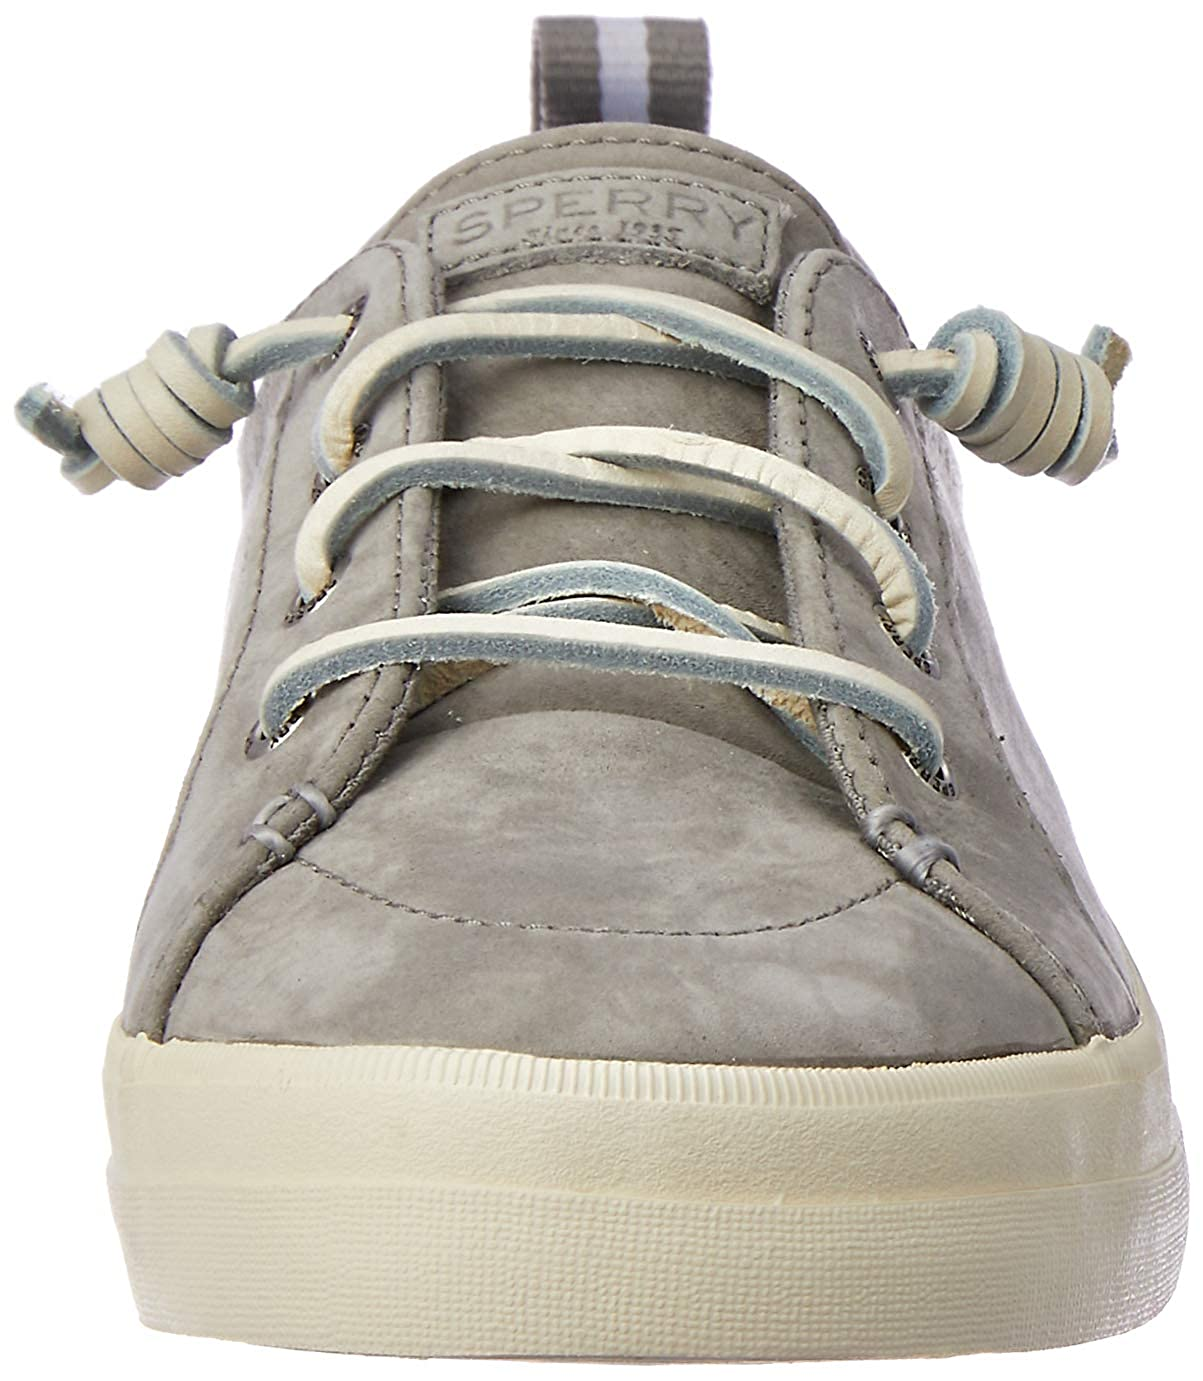 SPERRY Womens Crest Vibe Washable Leather Sneaker